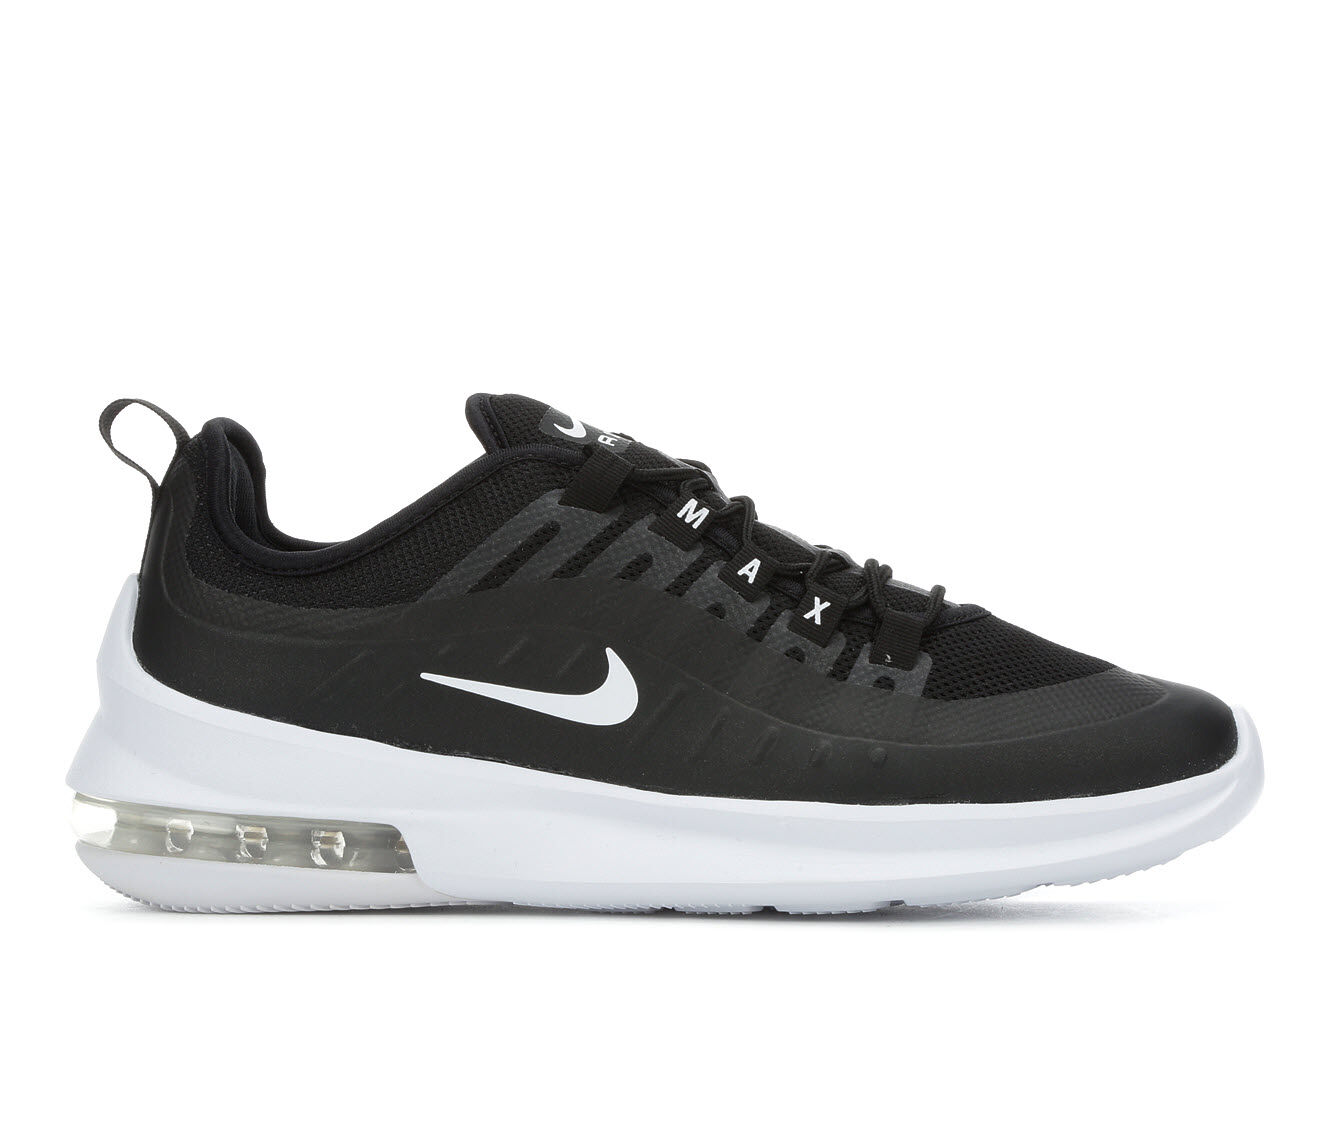 Men's Nike Air Max Axis Running Shoes Blk/Wht 003